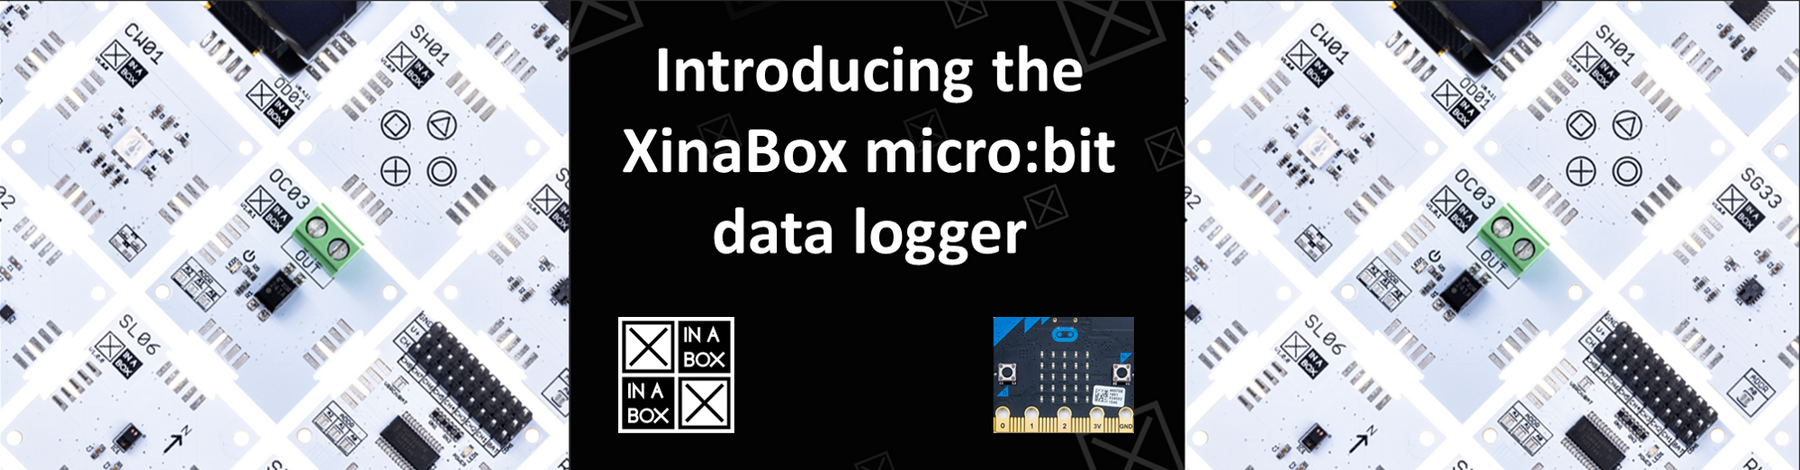 Announcing the micro:bit data logger